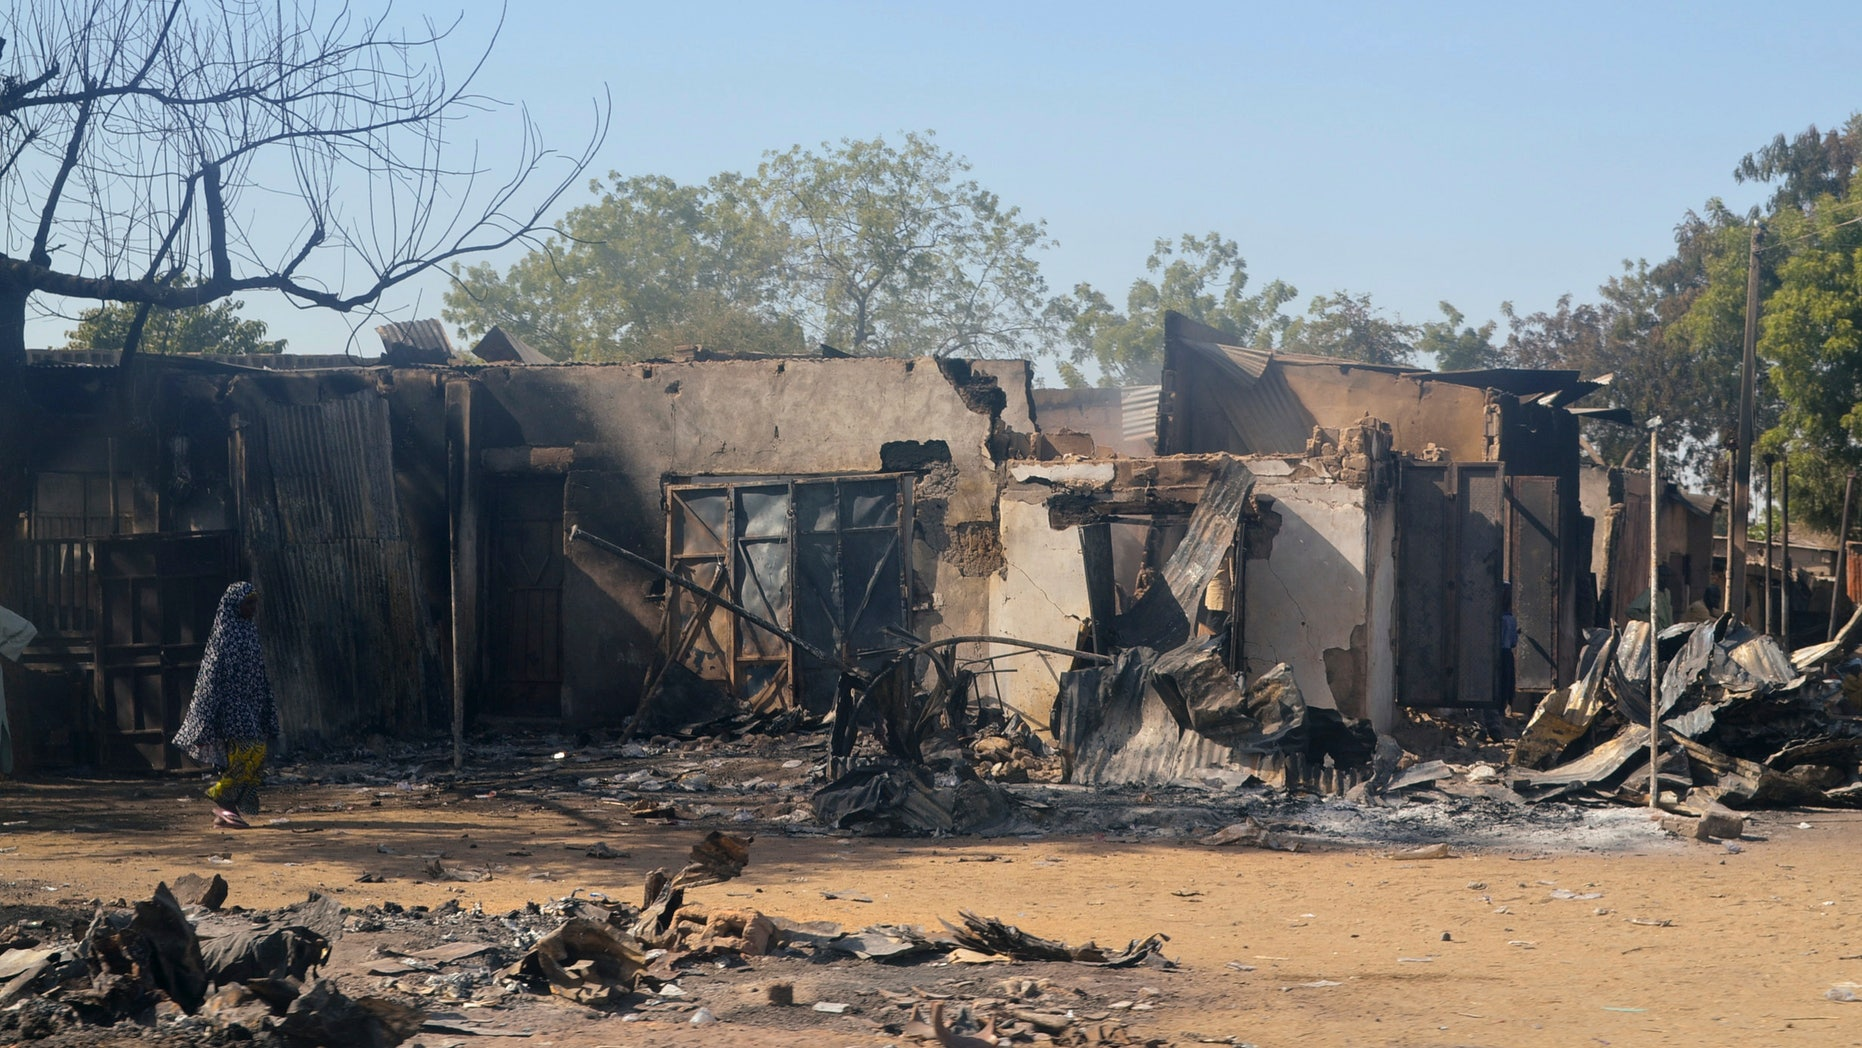 A woman walks past homes destroyed by the Islamist group Boko Haram in Bama, Borno State on Feb. 20, 2014.